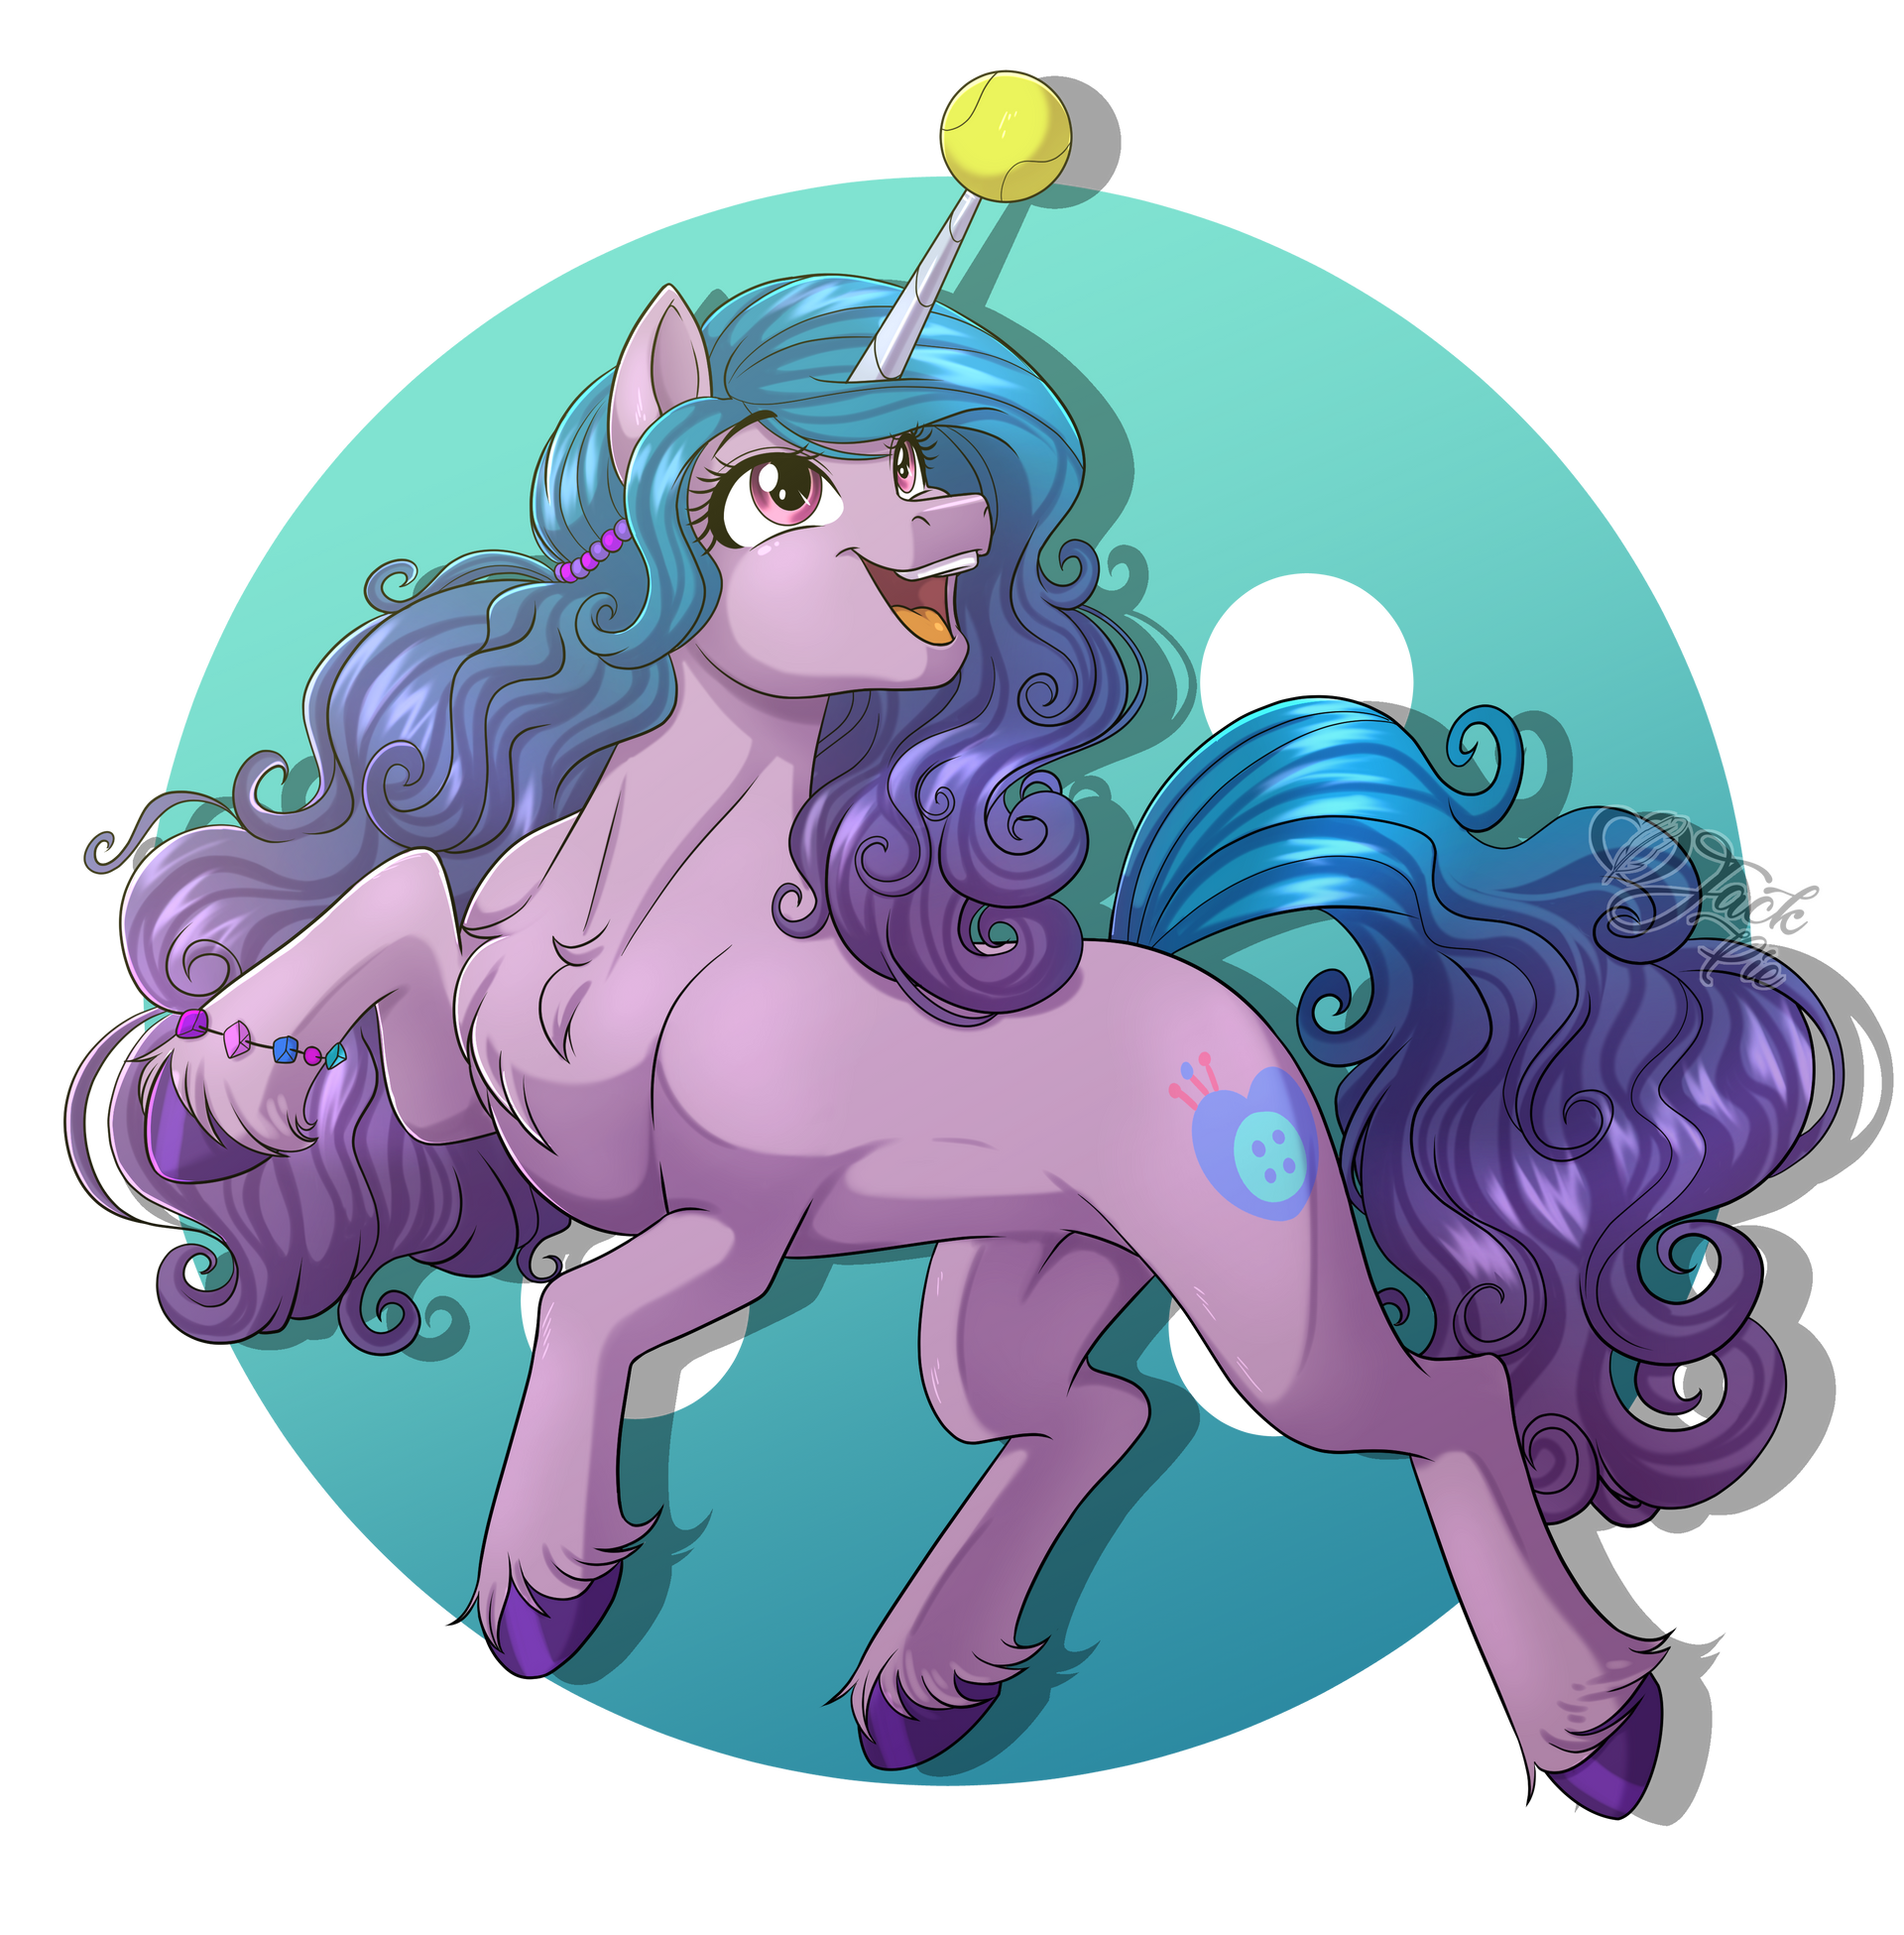 izzy_moonbow_by_jack_pie_dermfyr-fullview.png